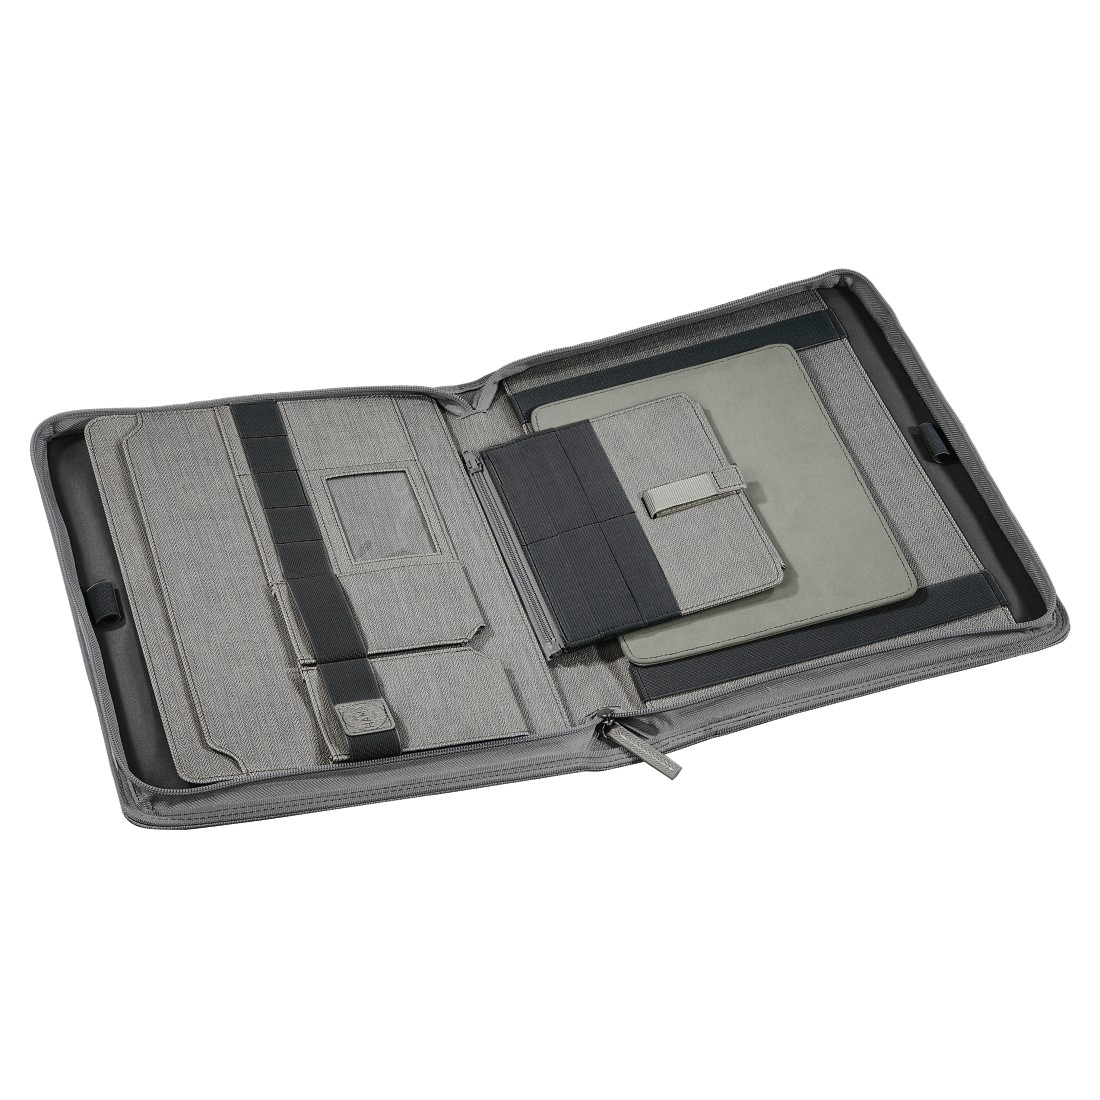 dex5 High-Res Detail 5 - Hama est. 1923, Hannover Tablet Organizer A4, light grey